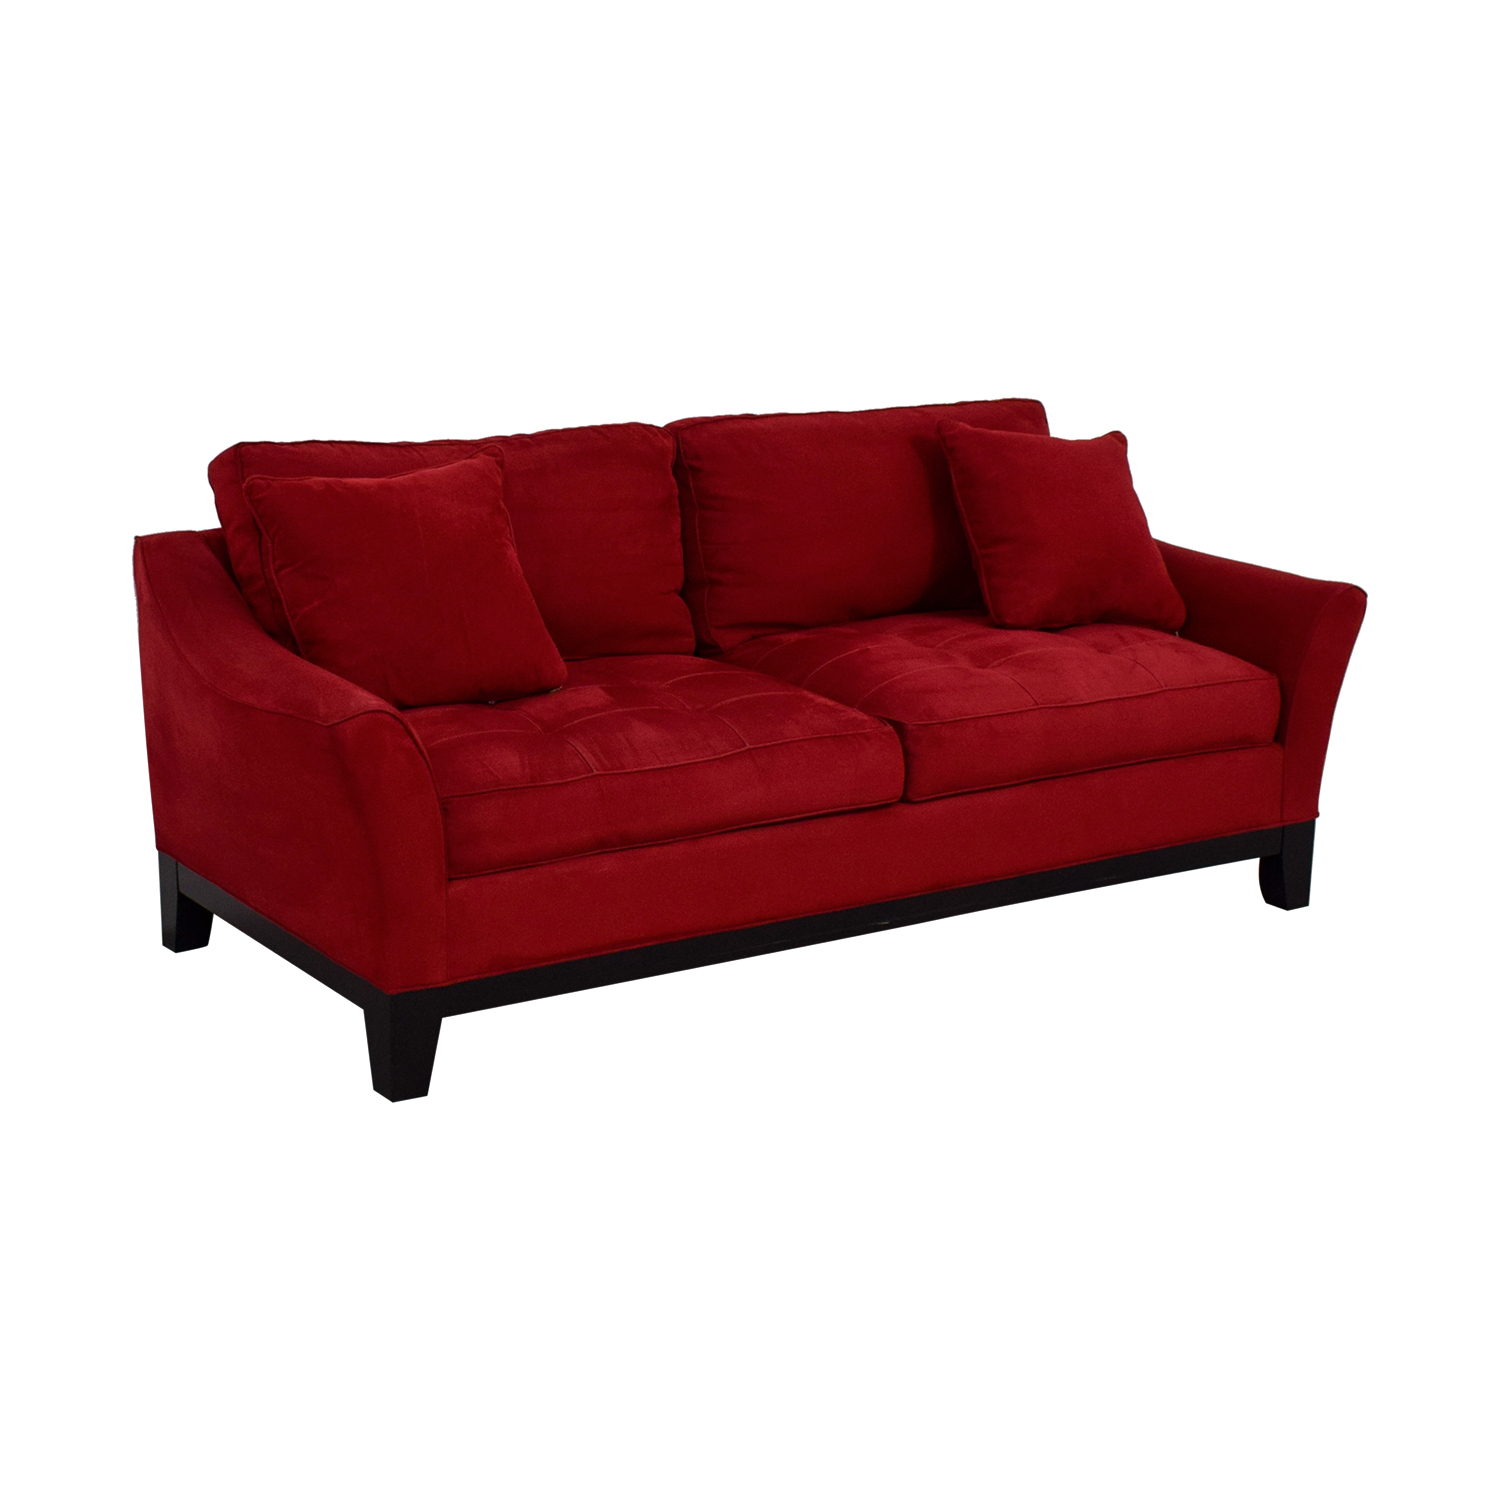 79% Off – Raymour & Flanigan Raymour & Flanigan Rory Red Thufted With Regard To Rory Sofa Chairs (View 9 of 25)